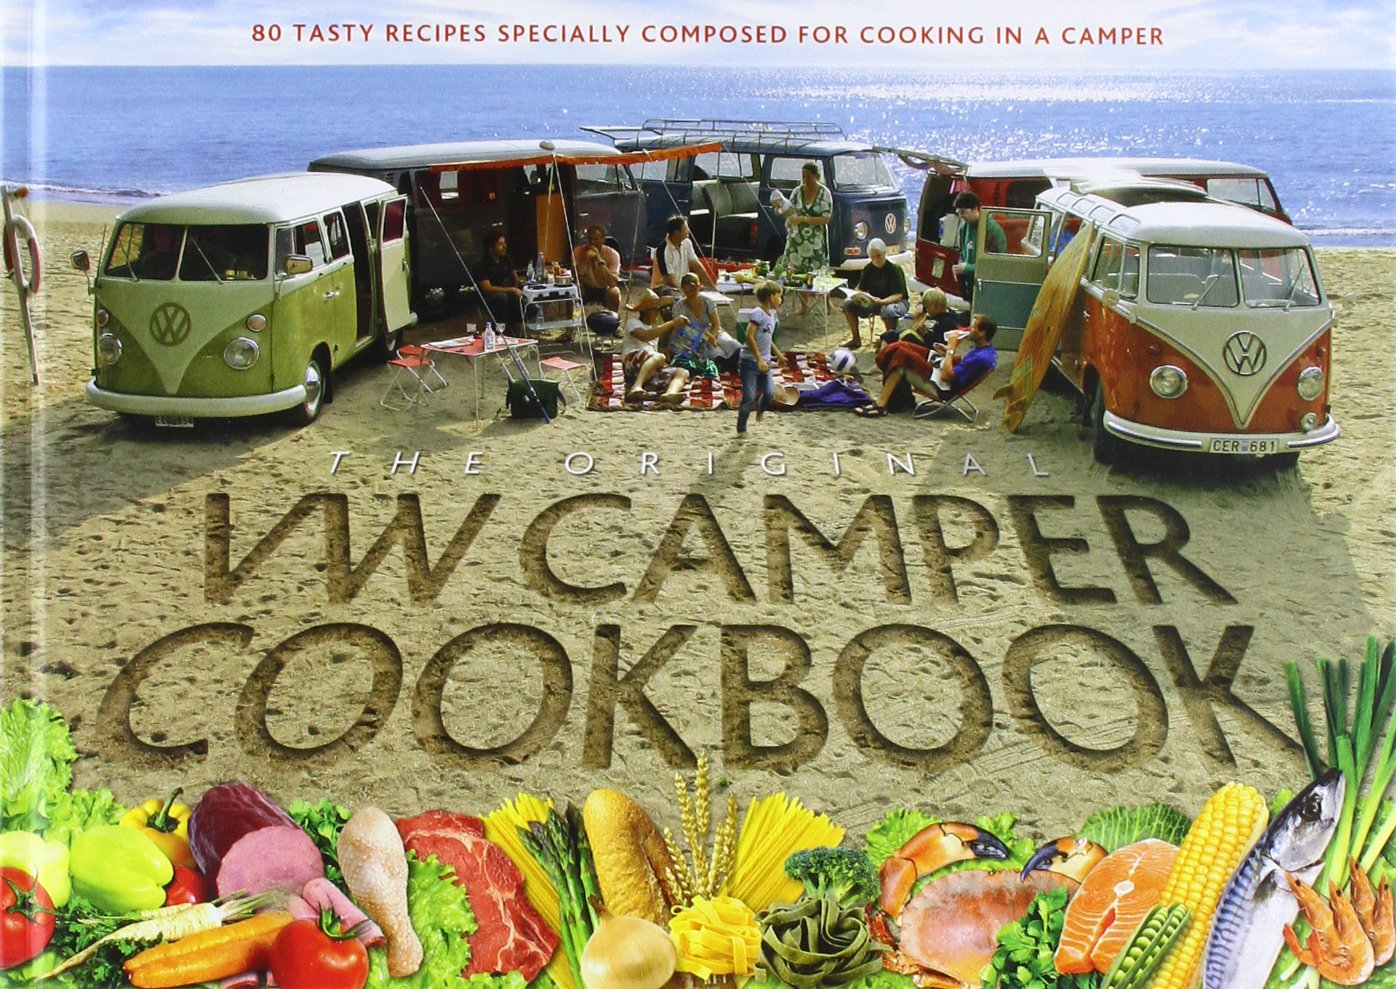 Download The Original VW Camper Cookbook: 80 Tasty Recipes Specially Composed for Cooking in a Camper PDF